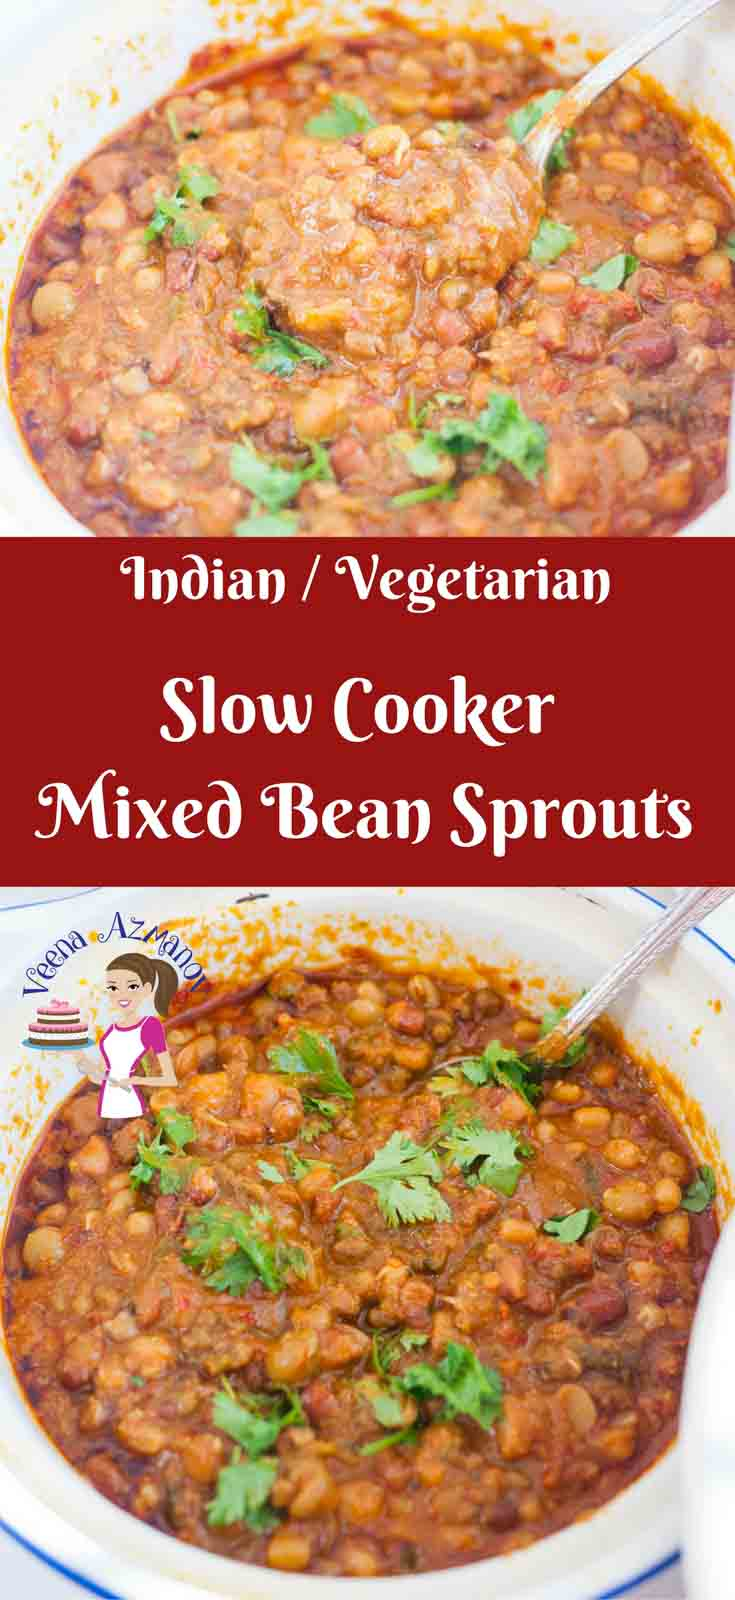 The mixed bean sprouts cooked long and slow in a slow cooker make a great meal over steamed white rice. Flavored with sweet smoky chilly peppers and cumin; cooked with creamy coconut cream for that delicious sweet spicy scrumptious meal.